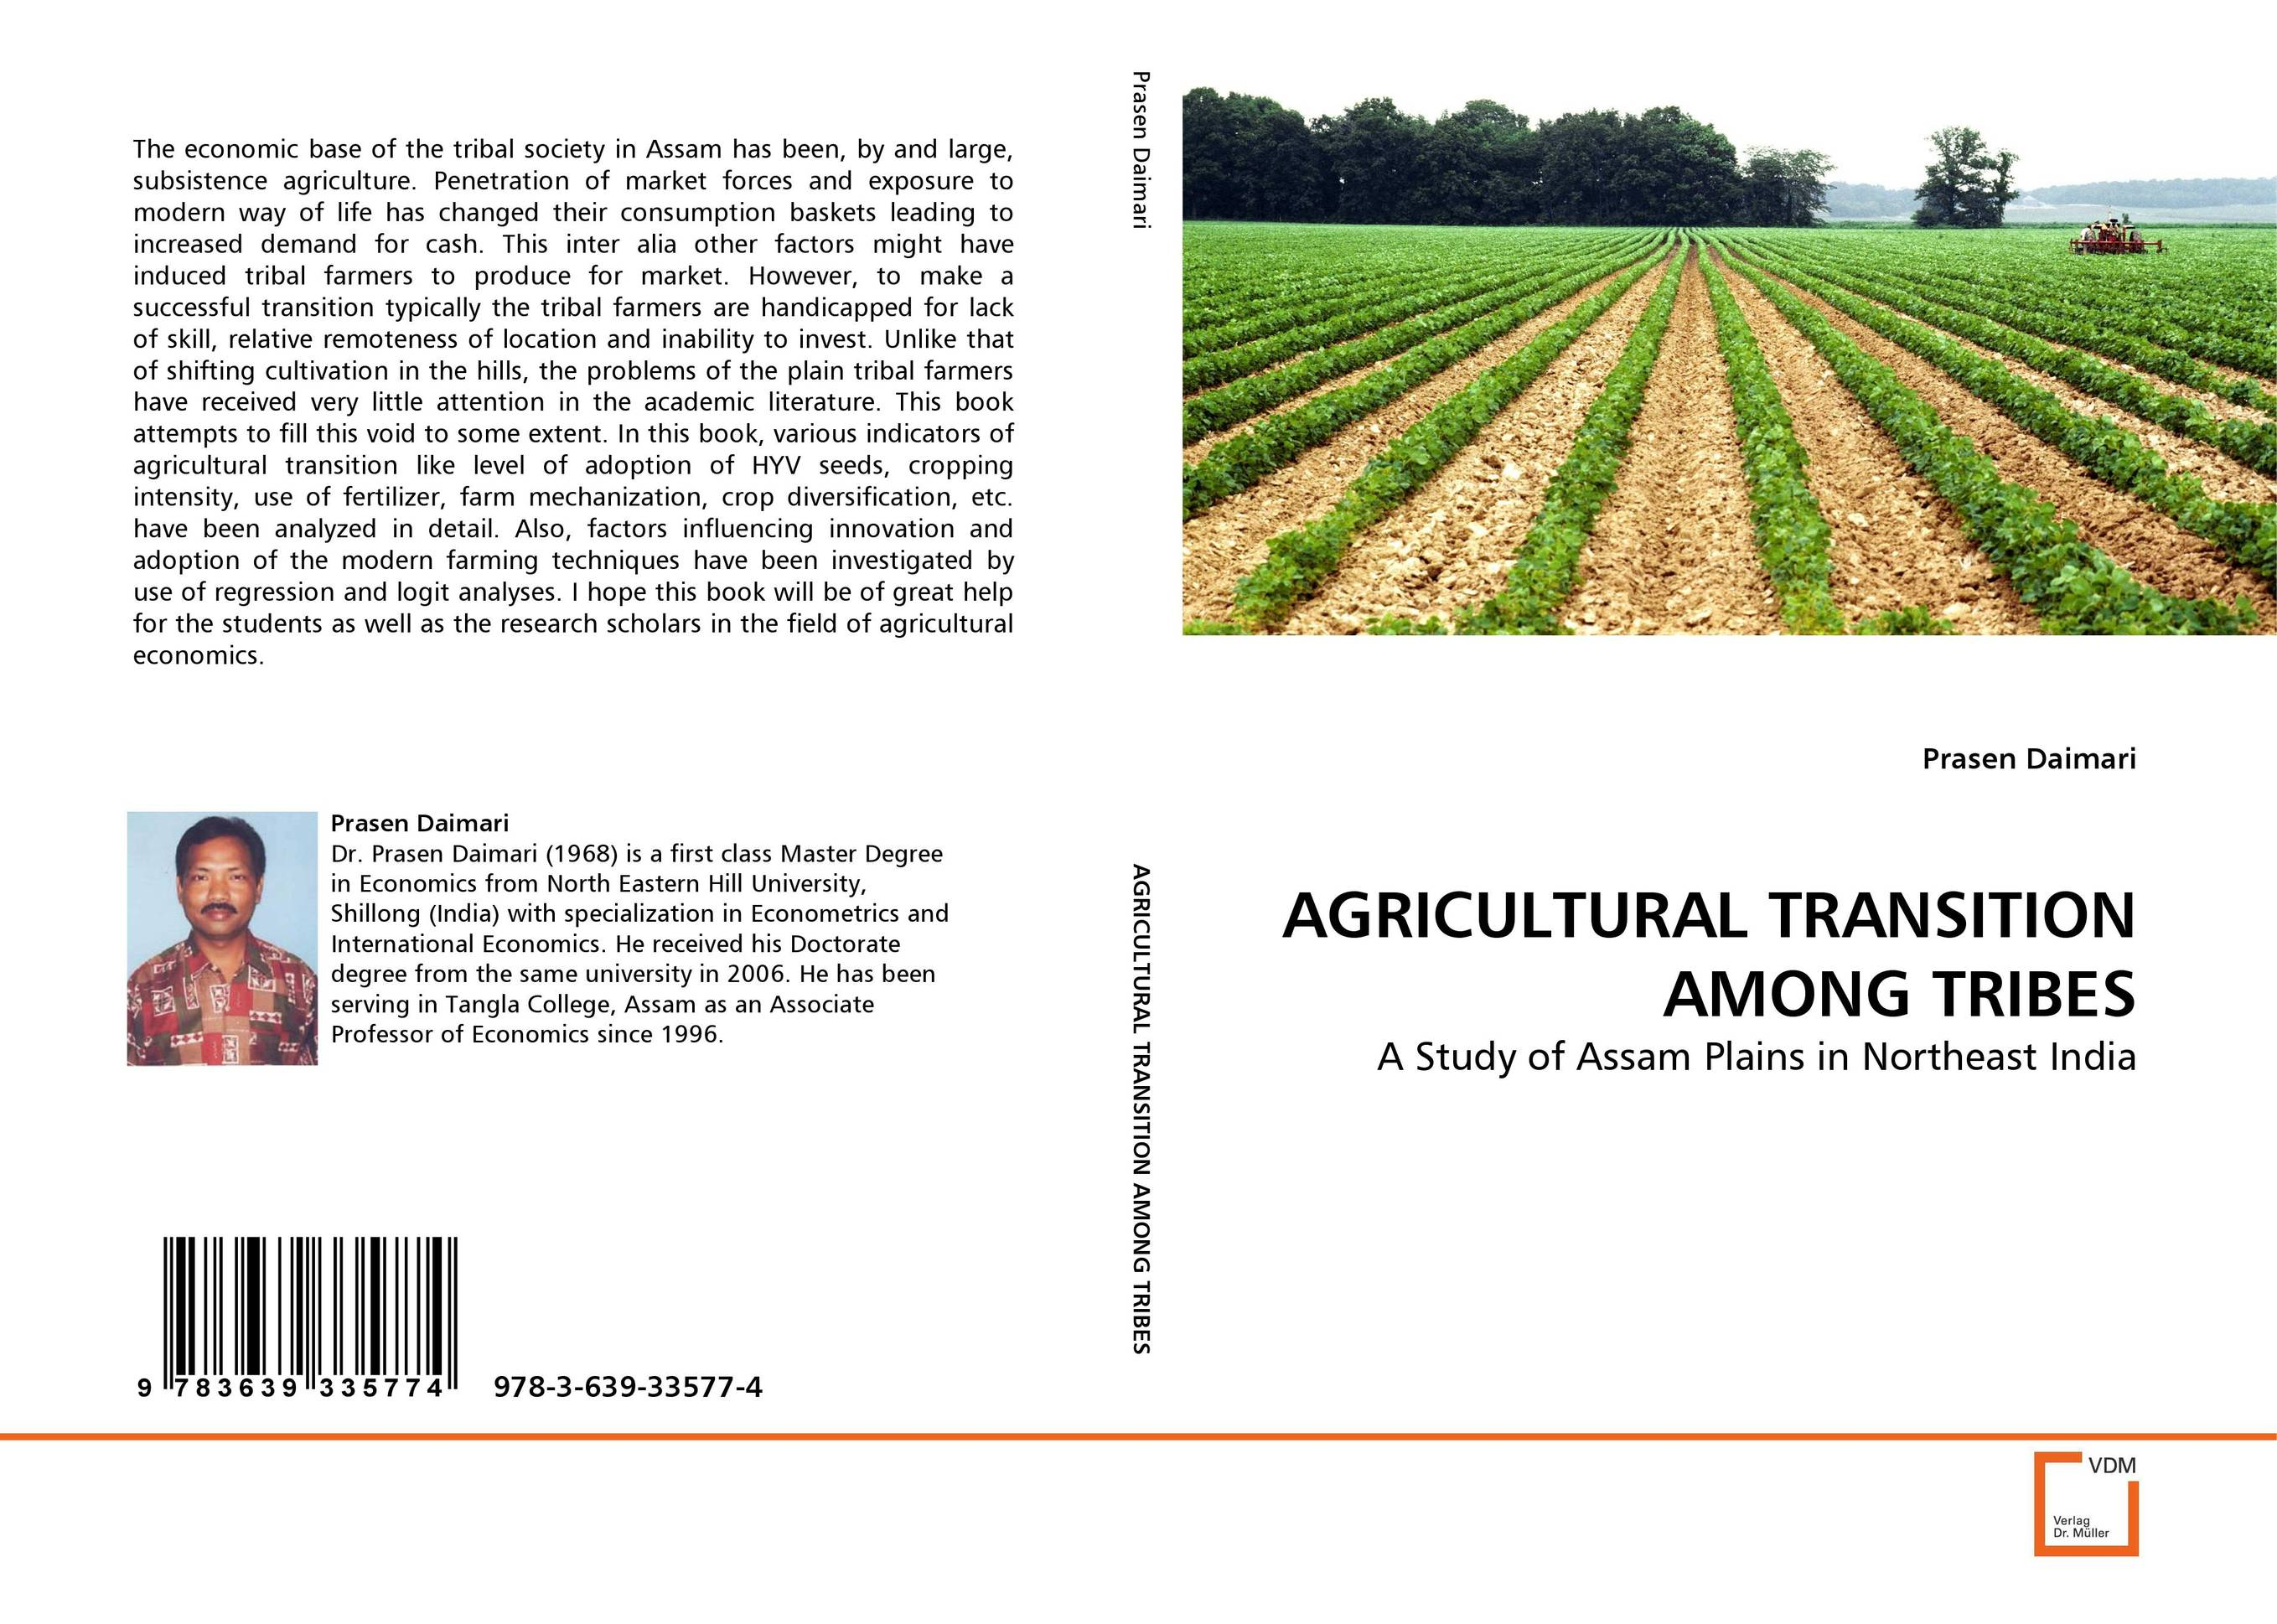 AGRICULTURAL TRANSITION AMONG TRIBES alan roxburgh missional map making skills for leading in times of transition